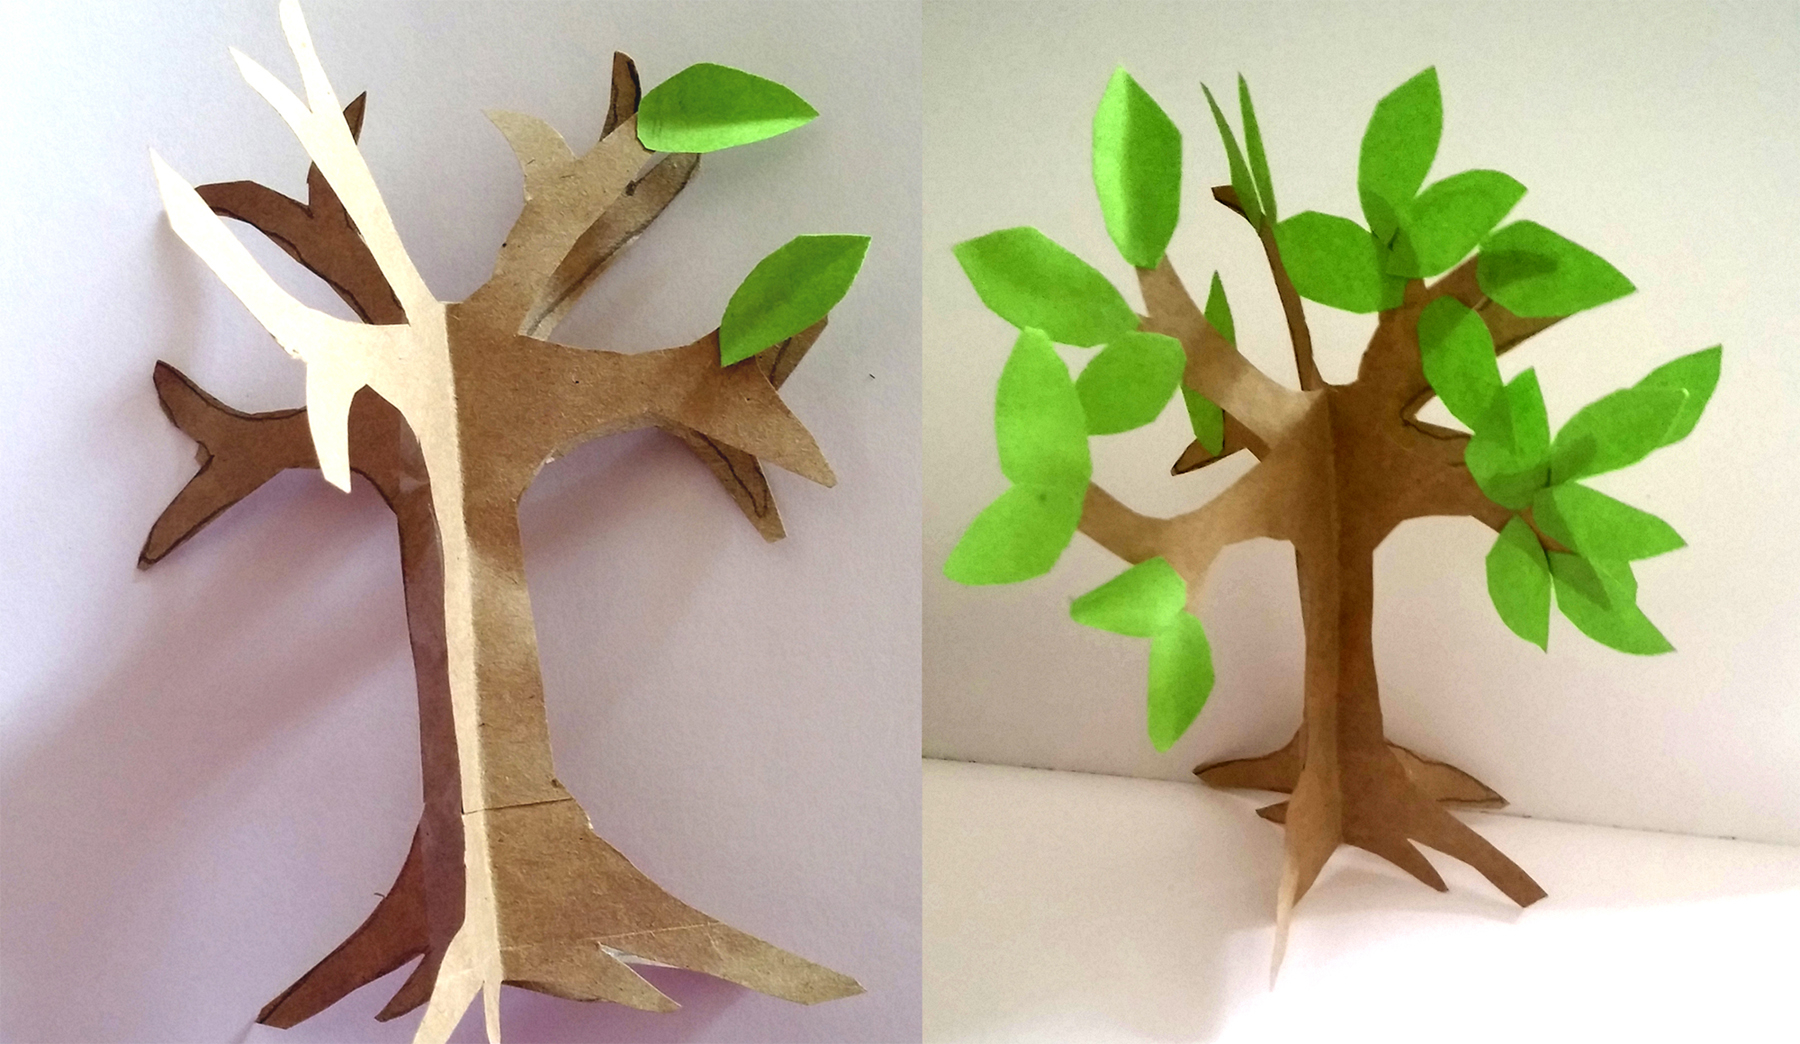 How to Make a Paper Crafts for Gifts How To Make An Easy Paper Craft Tree Imagine Forest